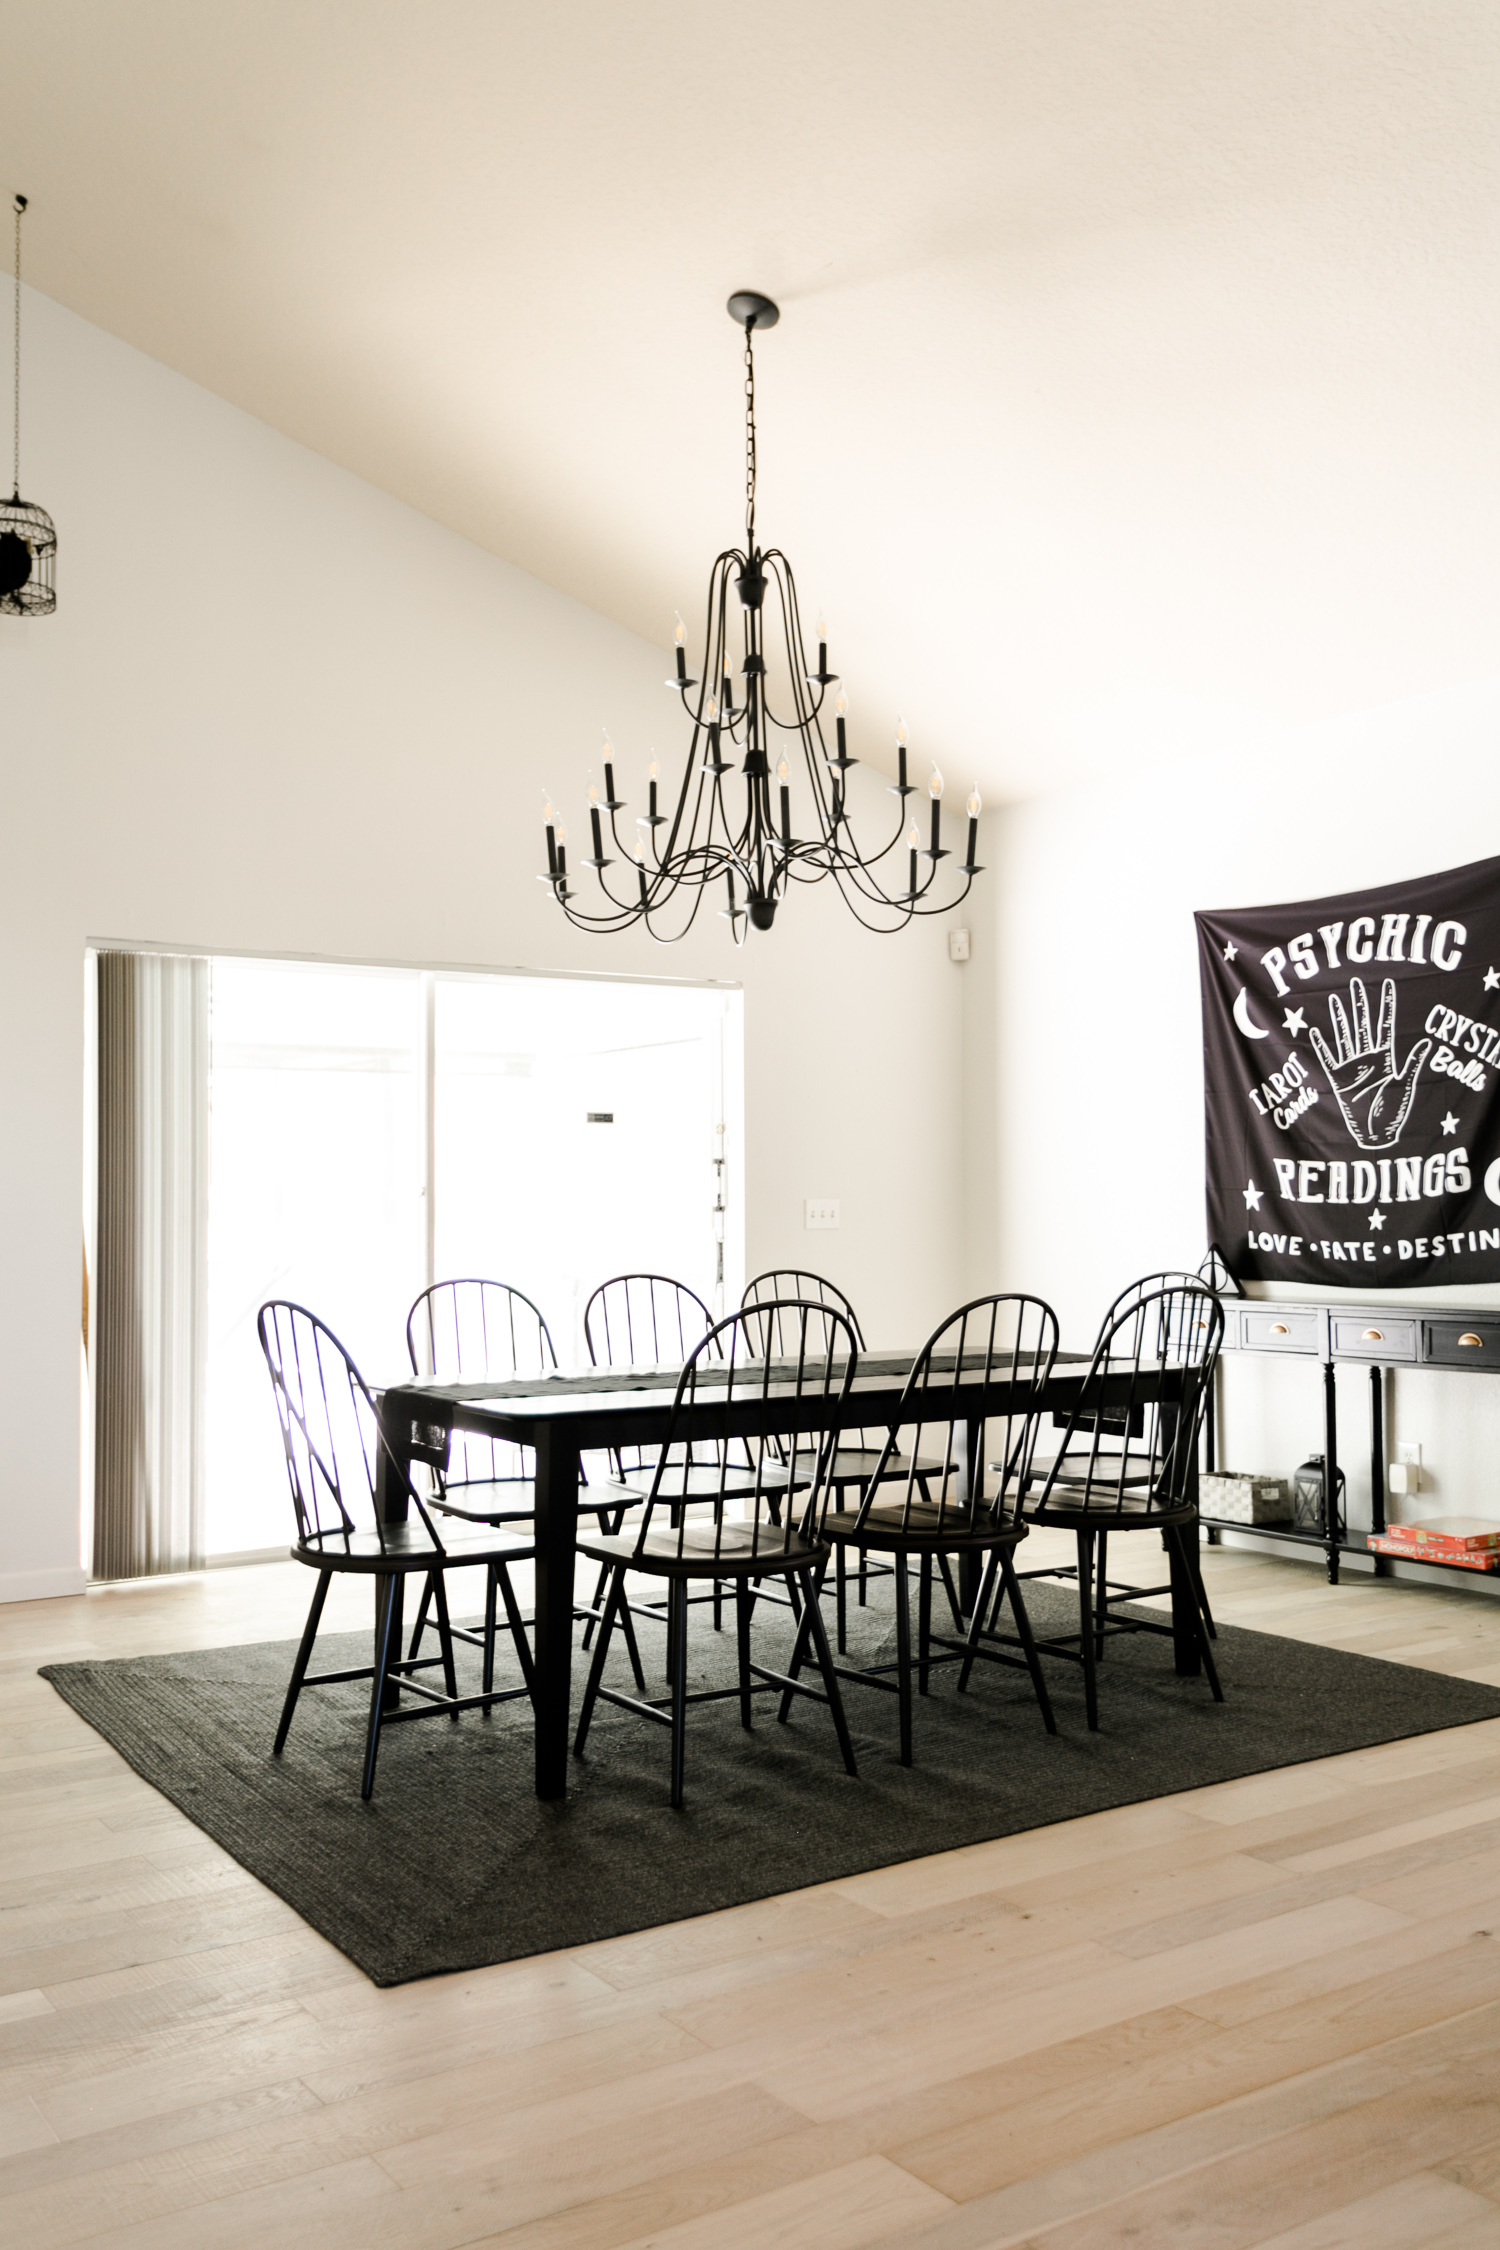 Harry Potter-Inspired Dining Room Tour